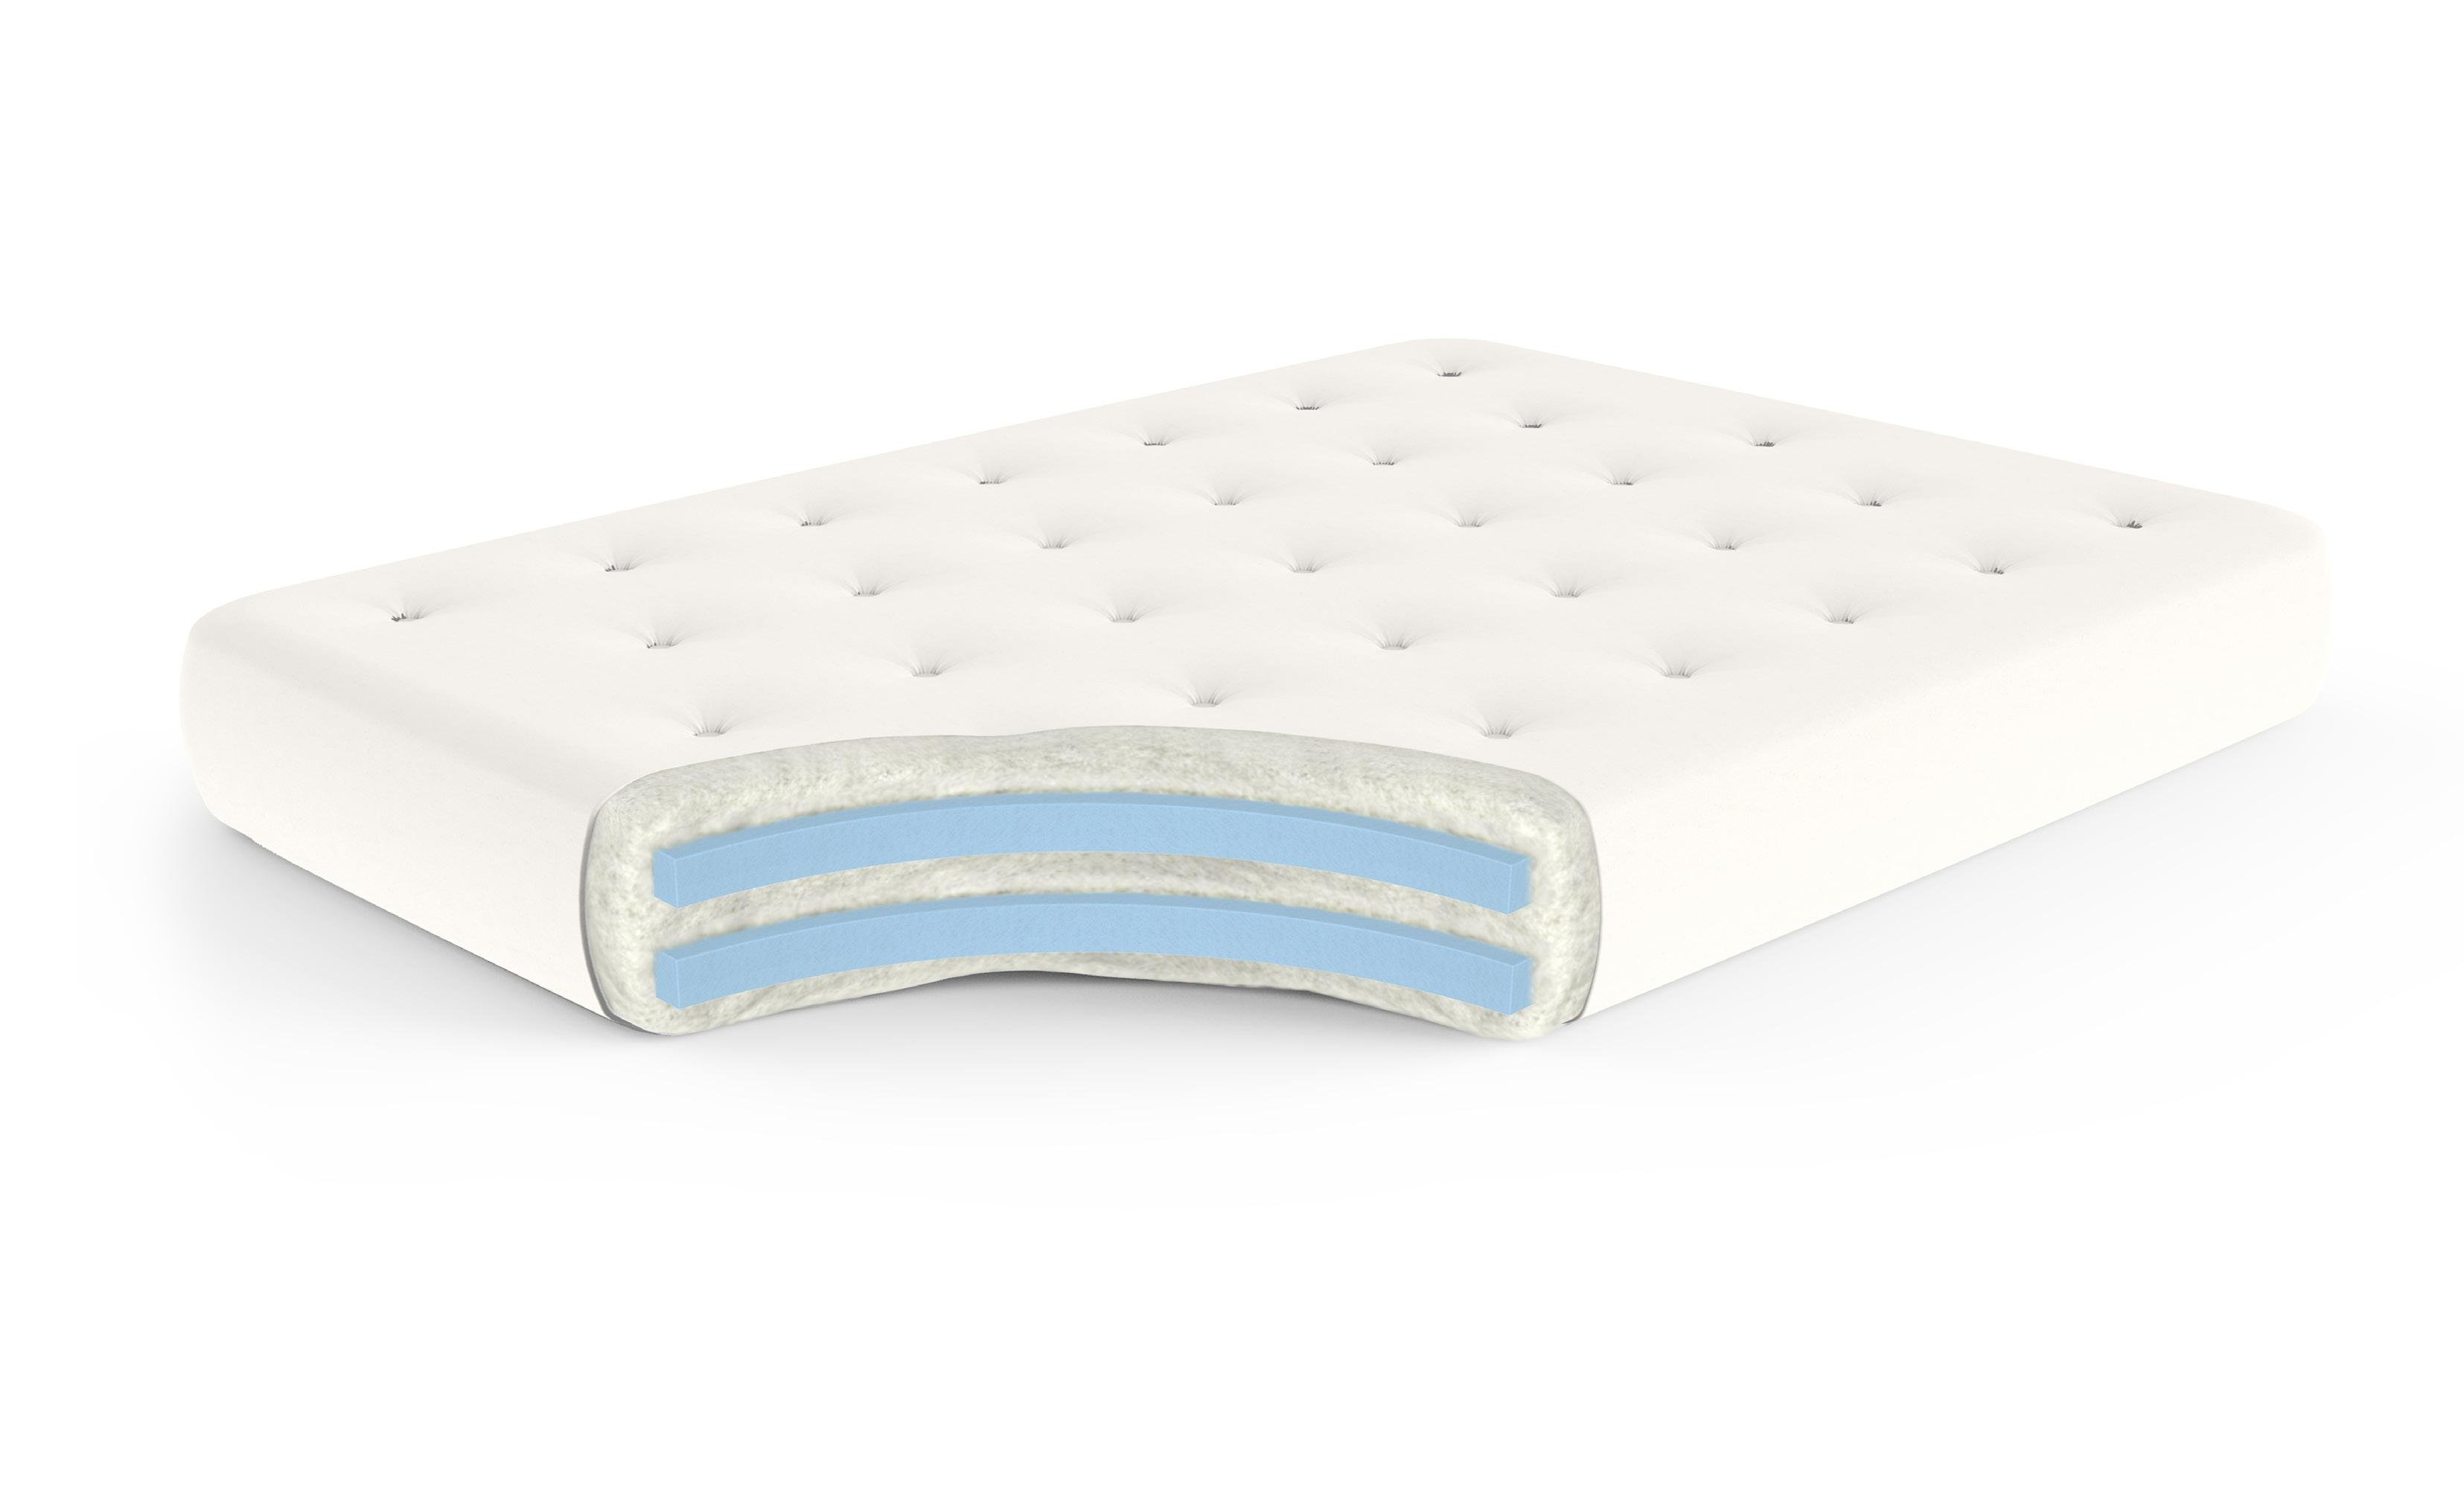 Double Foam 10 Inch Futon Mattress By